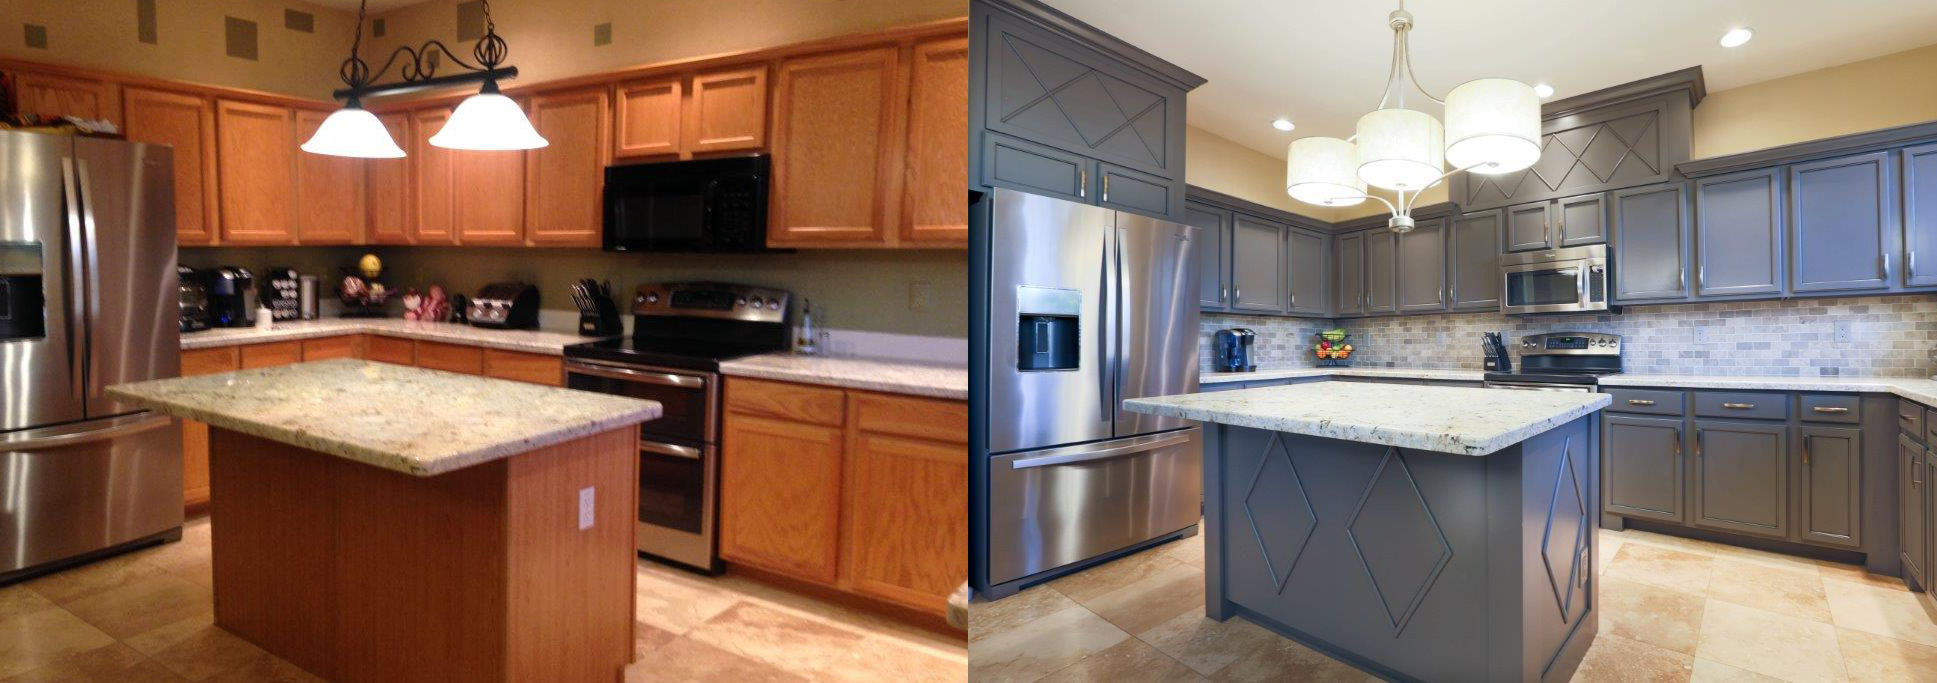 Permalink to Refinishing Kitchen Cabinets